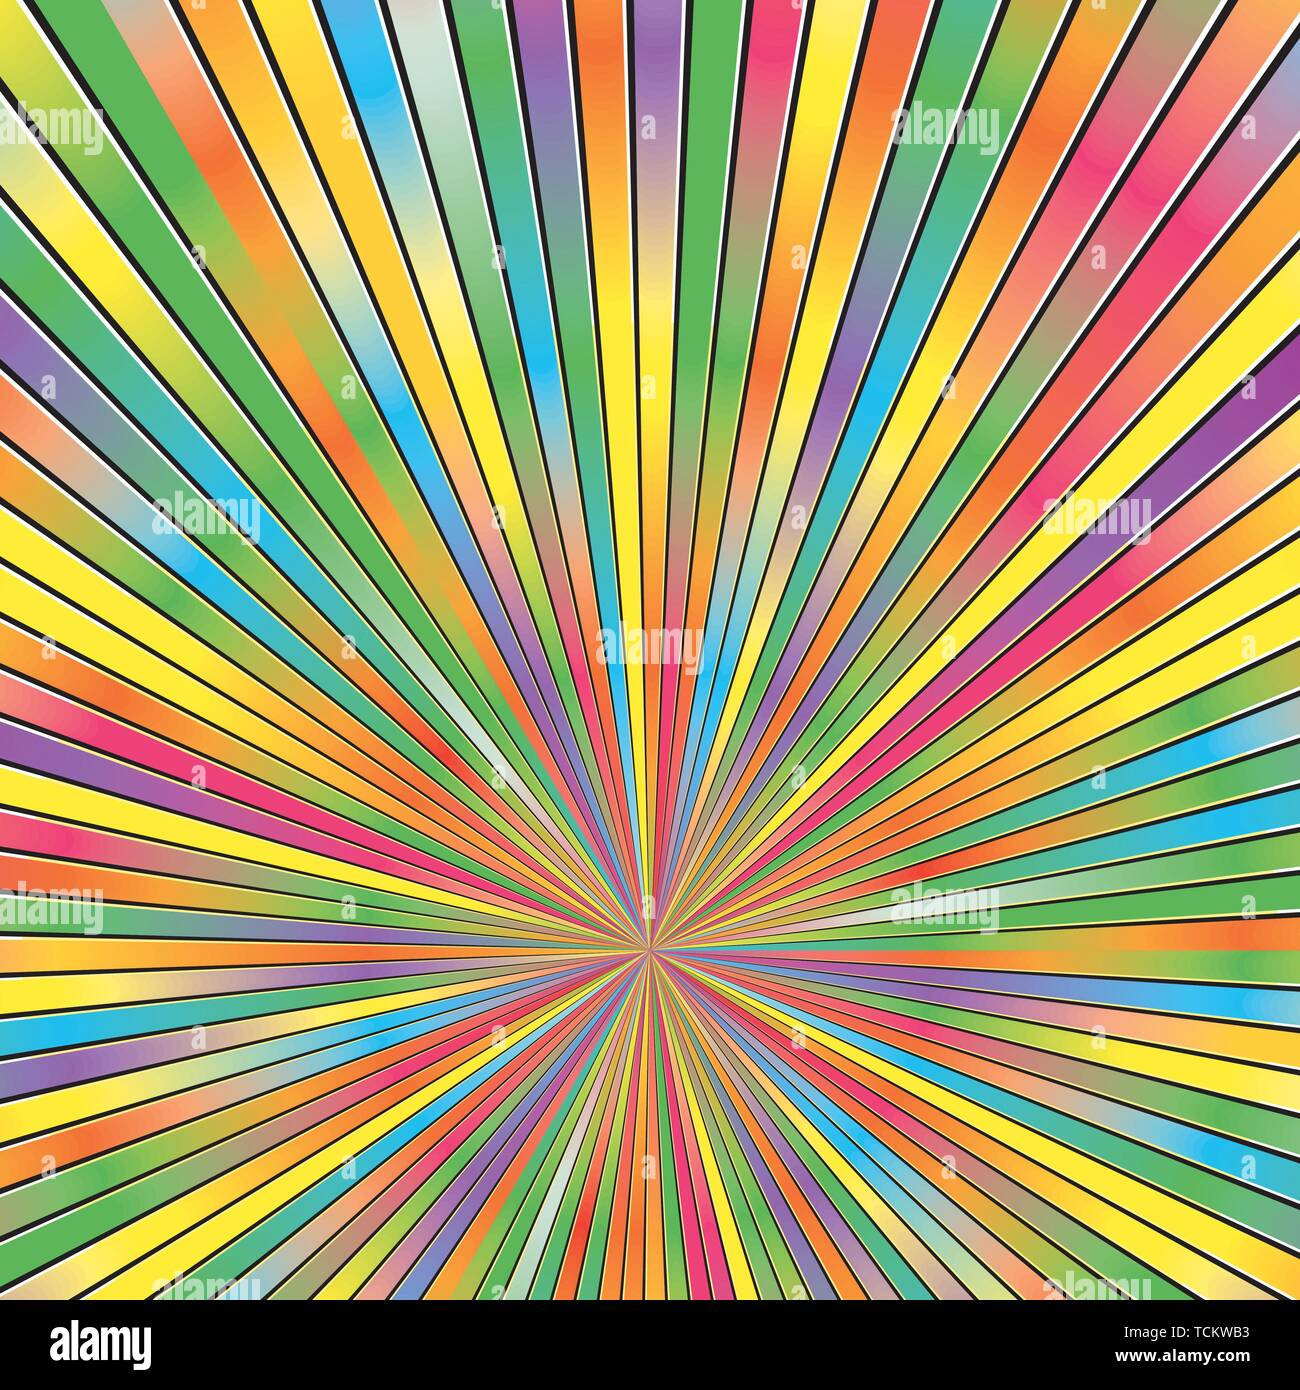 Colorful Abstract Sunburst Rays  Background Pattern Texture. Modern Concept In Vector .EPS file.No Raster Effects. - Stock Image